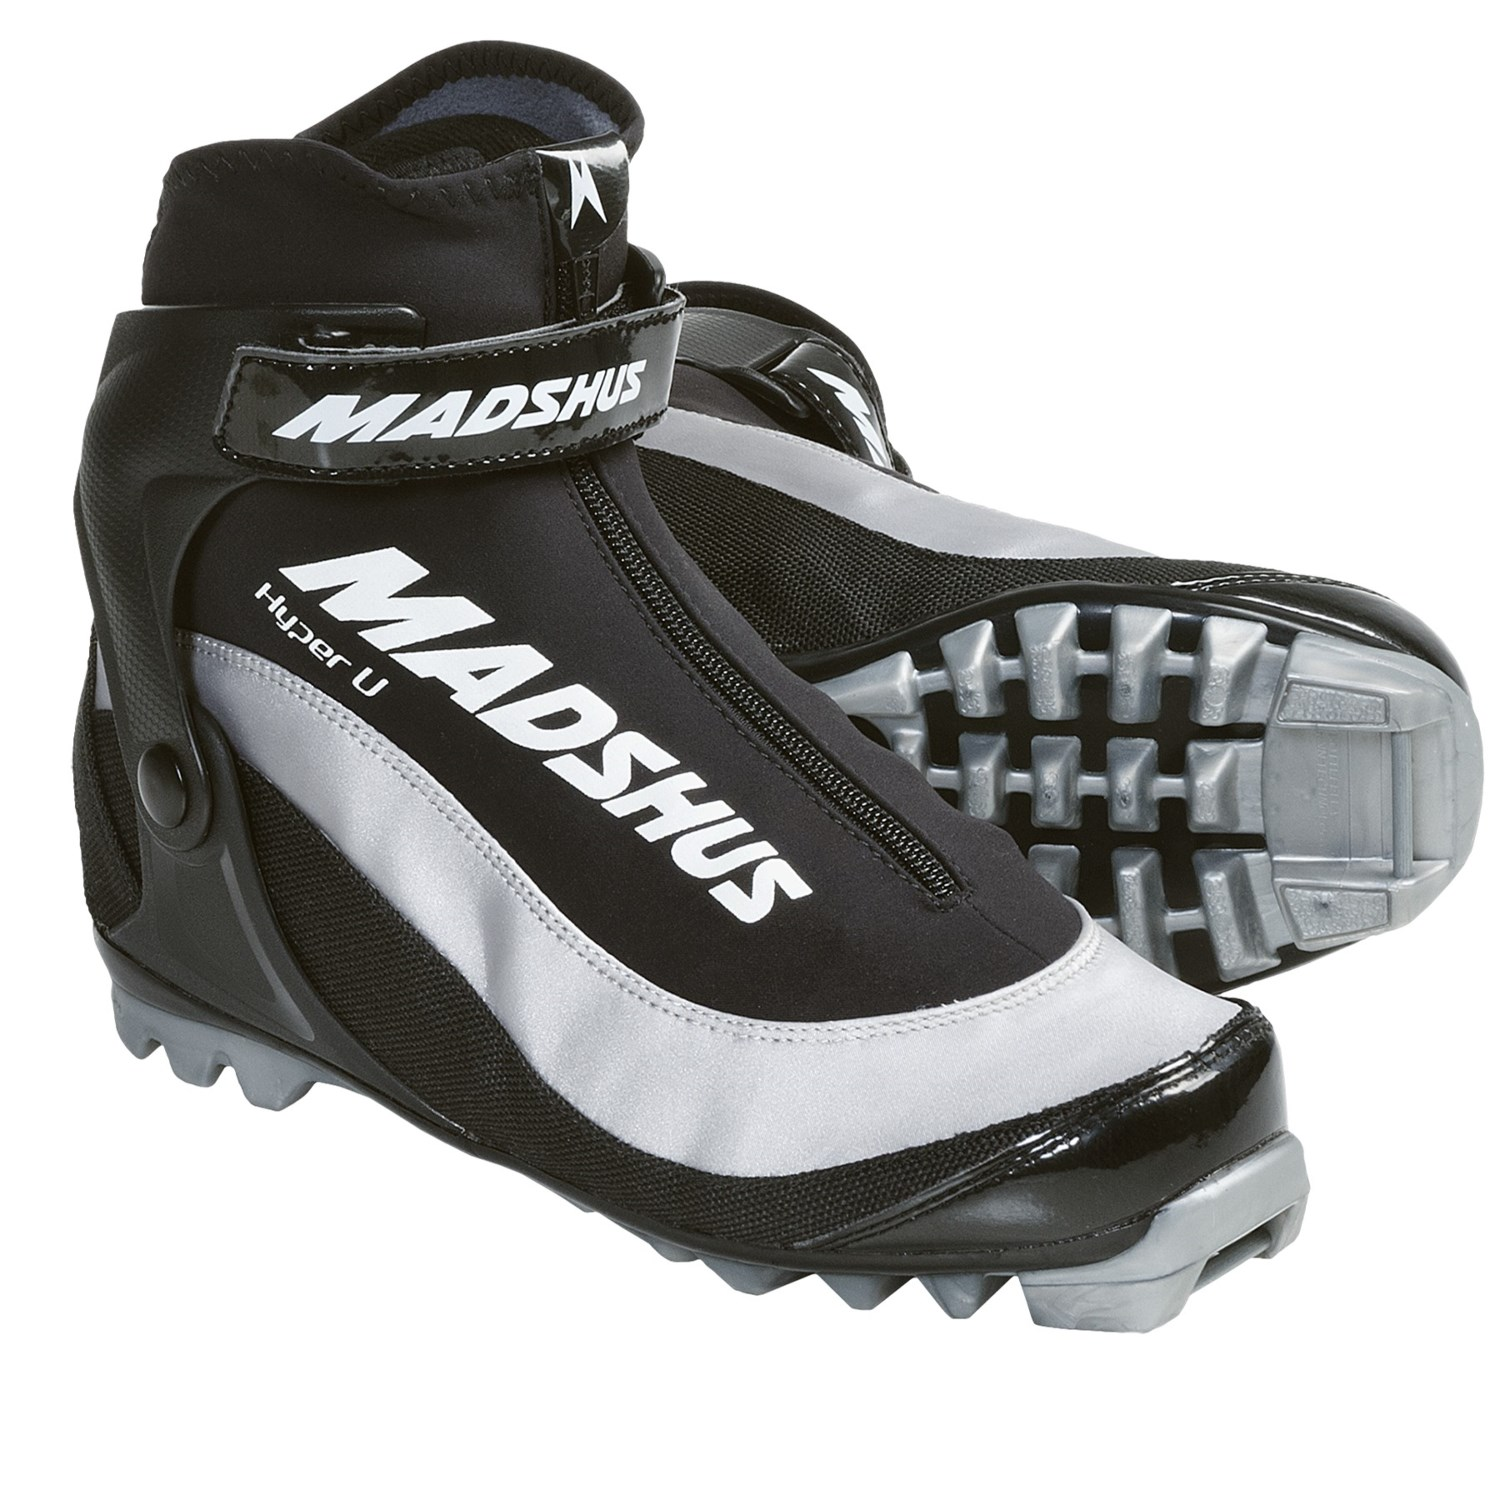 Madshus Hyper U Touring Cross Country Ski Boots For Men